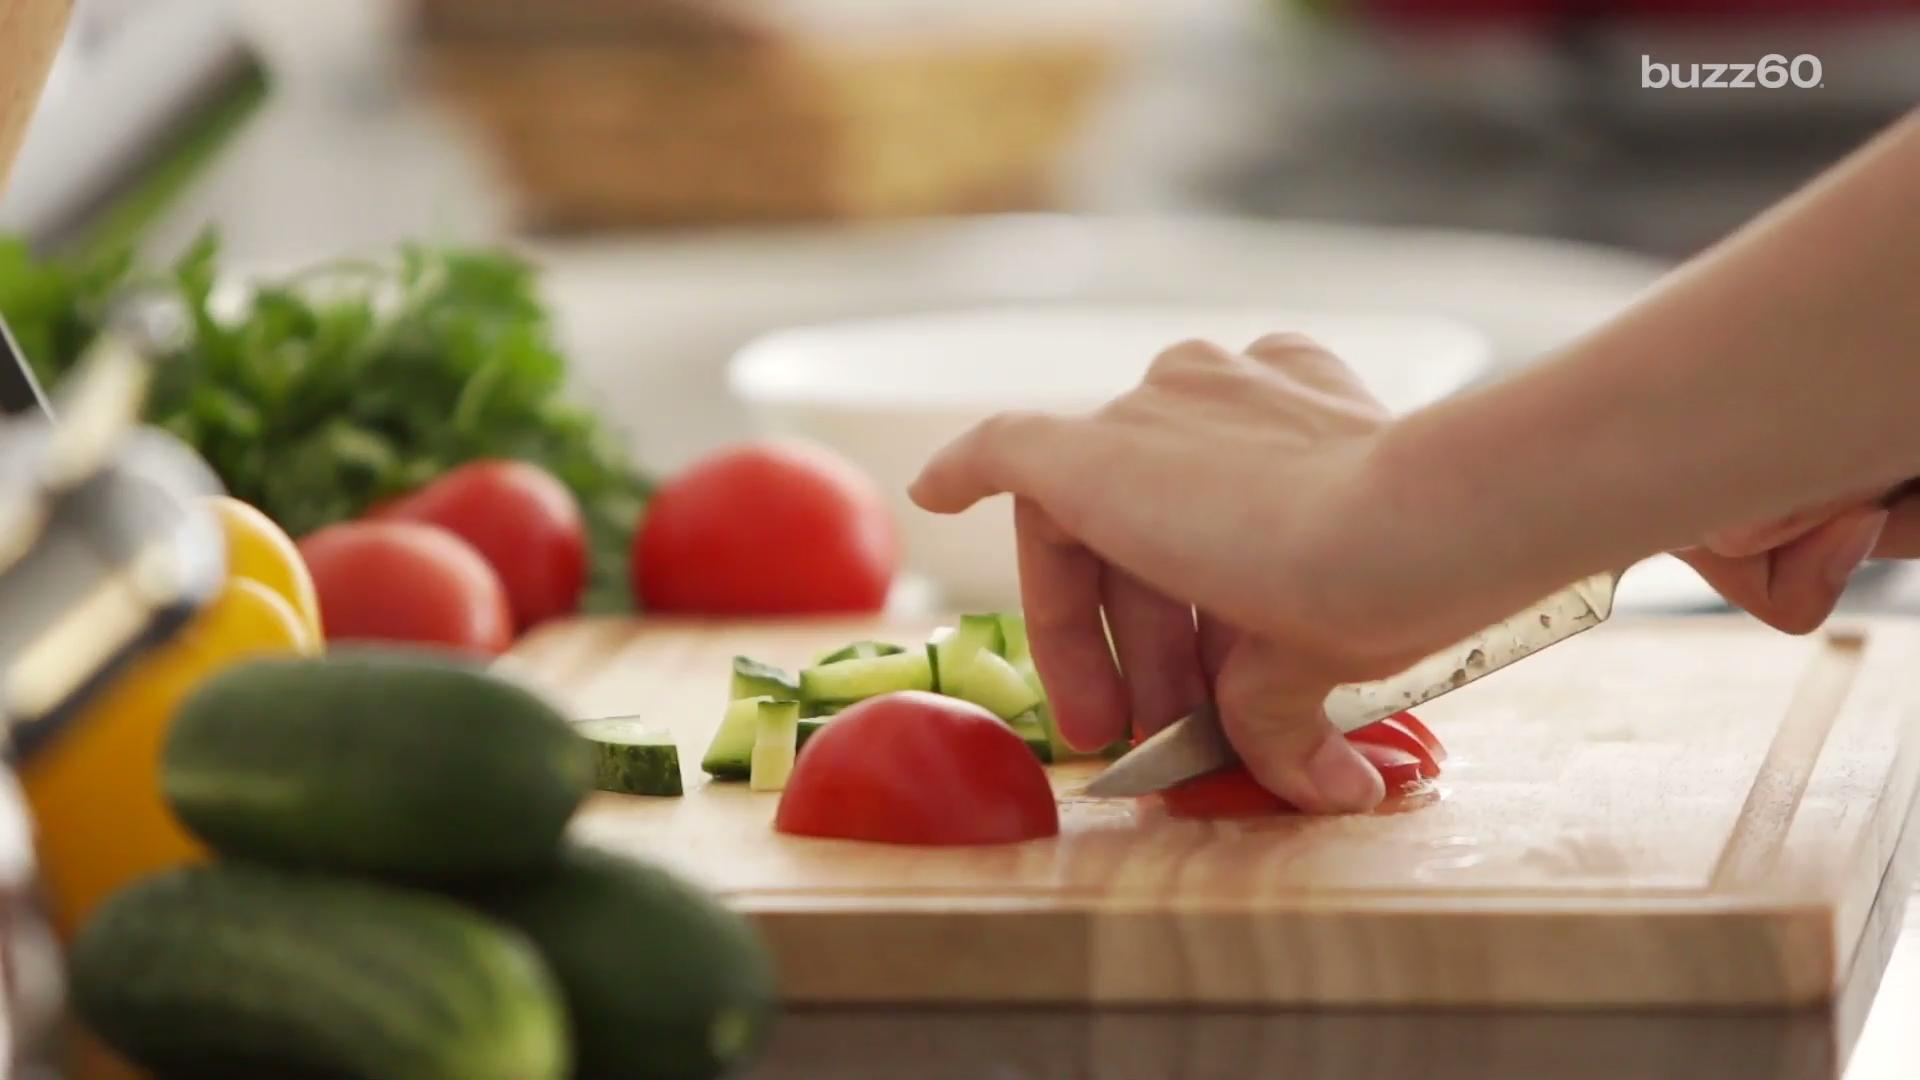 Do You Know How to Cut the Most Popular Vegetables?